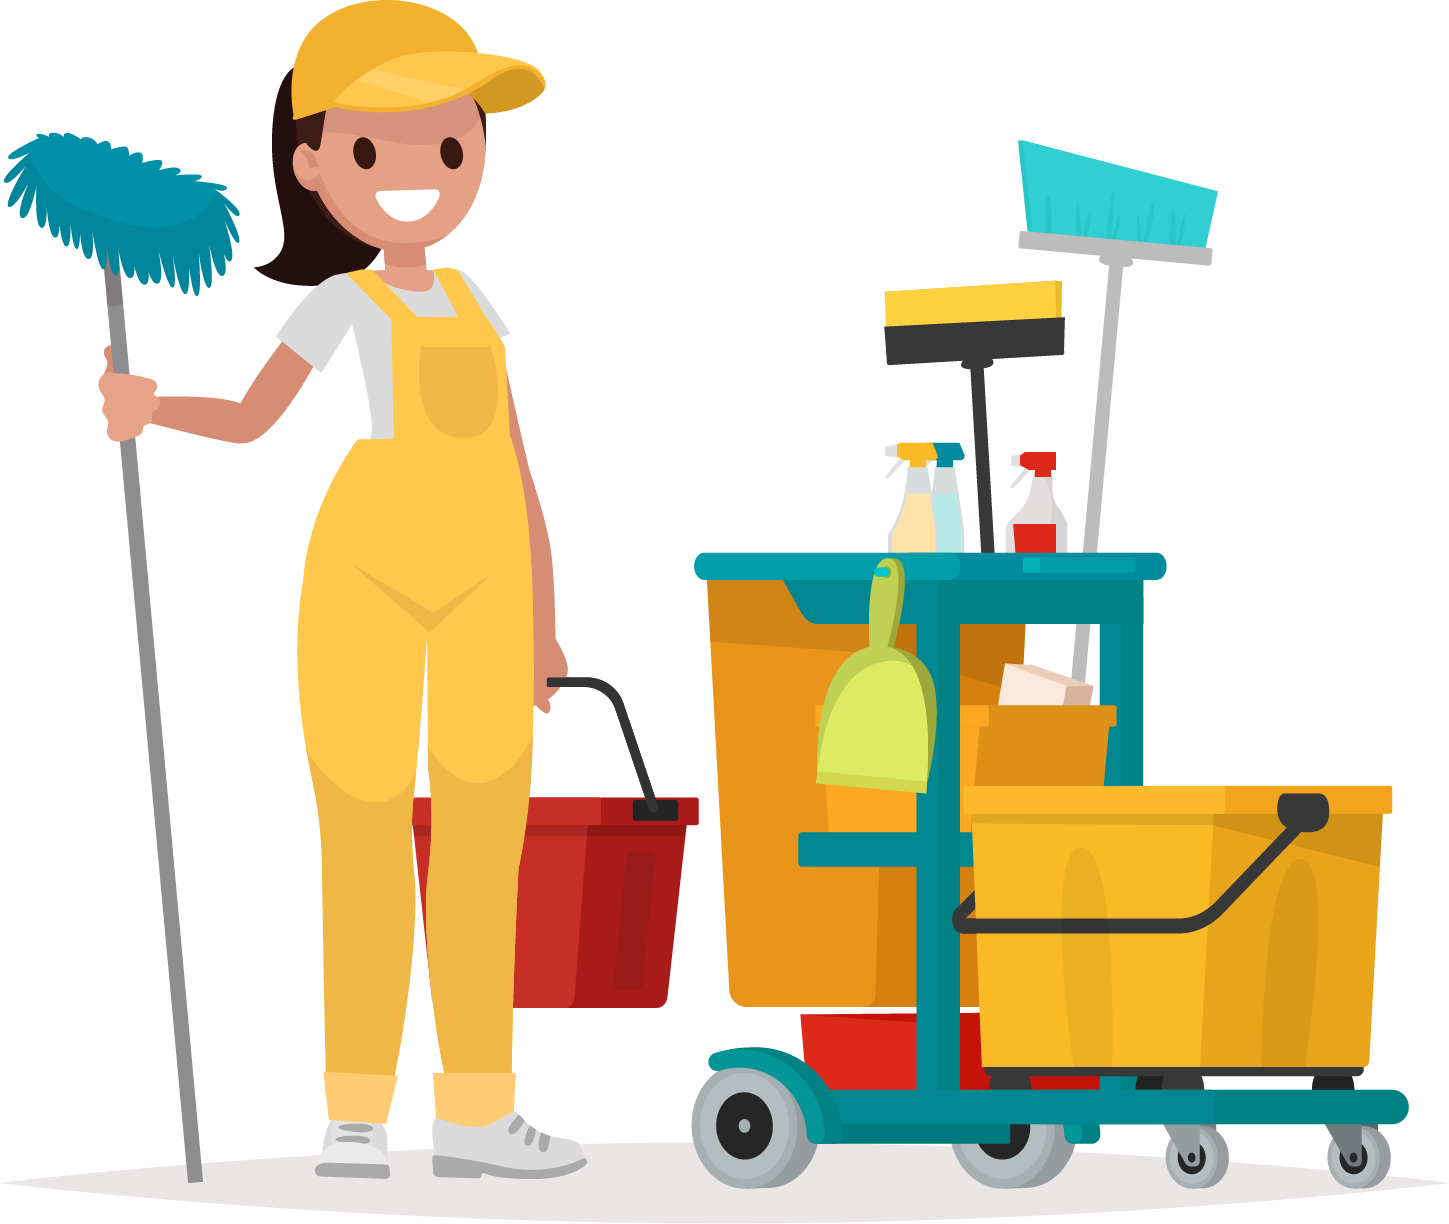 Janitor clipart industrial, Janitor industrial Transparent.